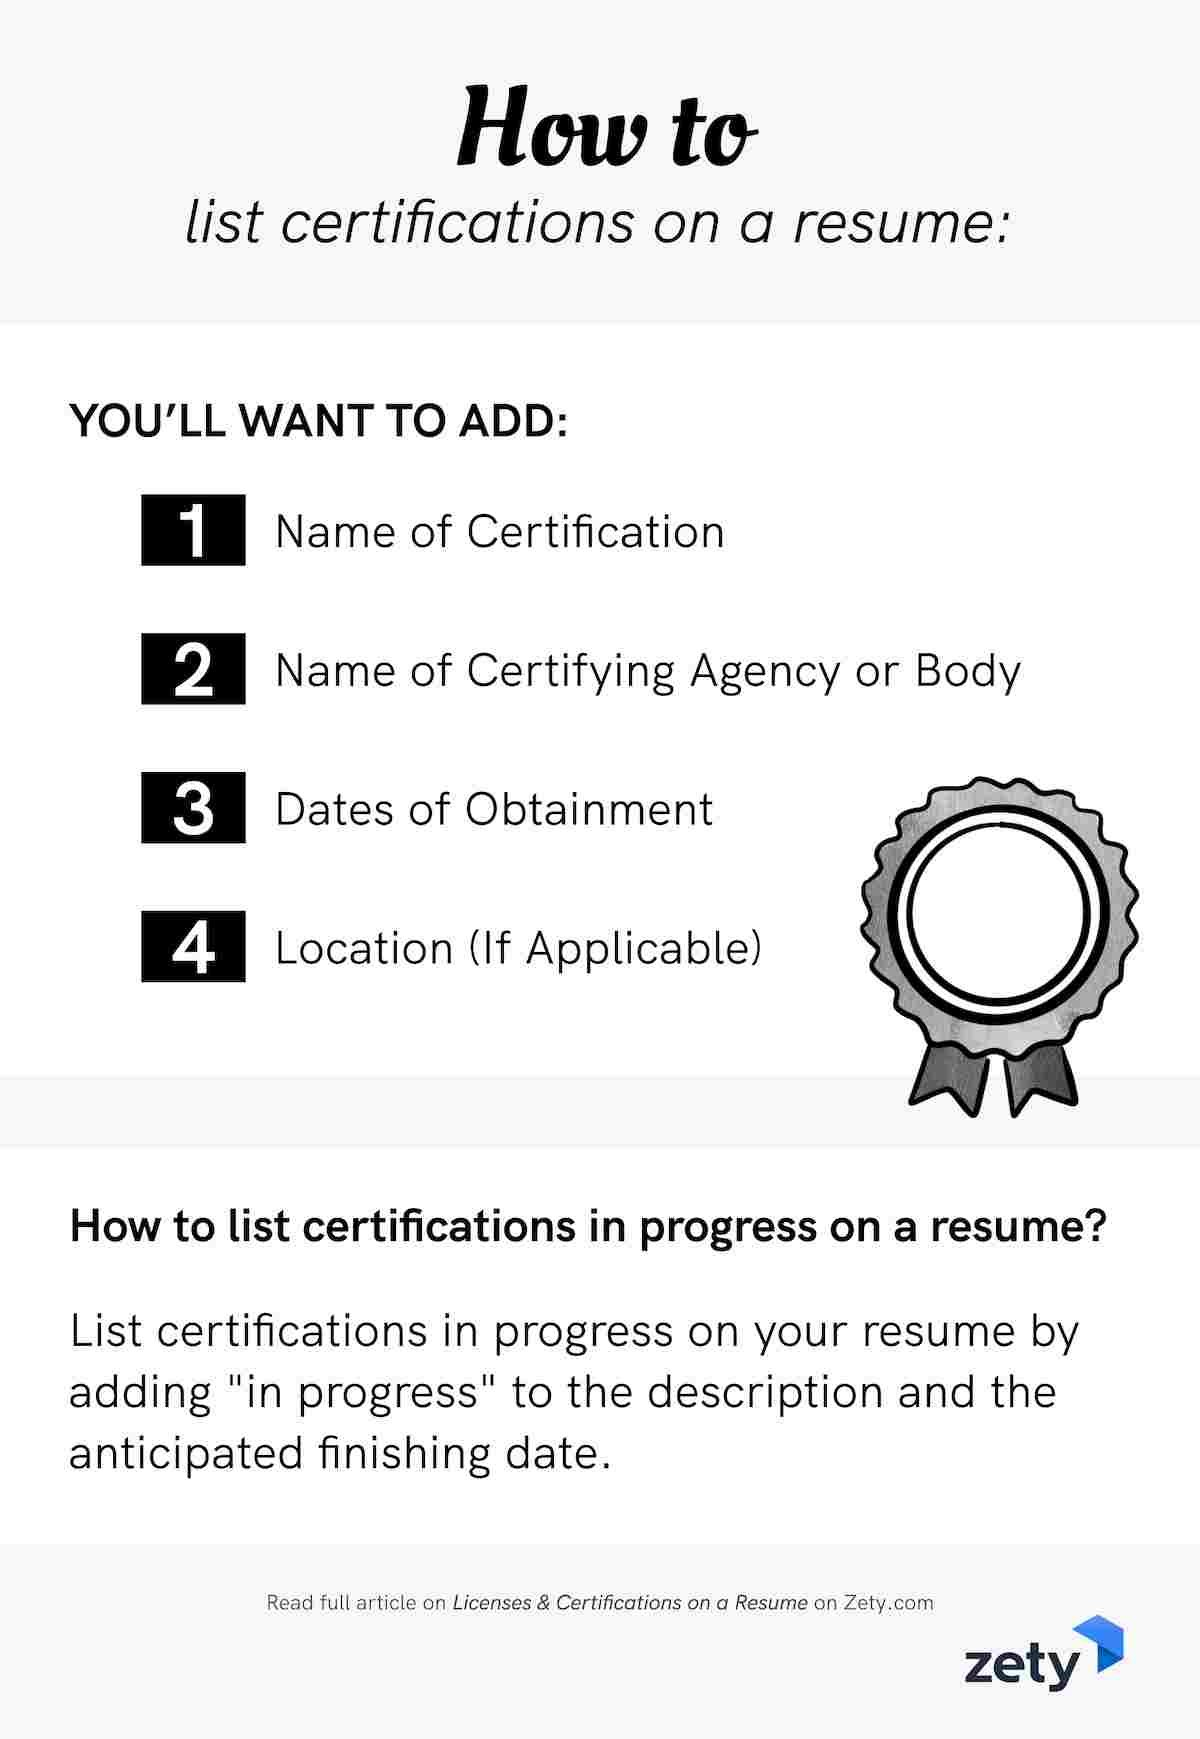 Licenses Certifications On A Resume Sample Easy Tips